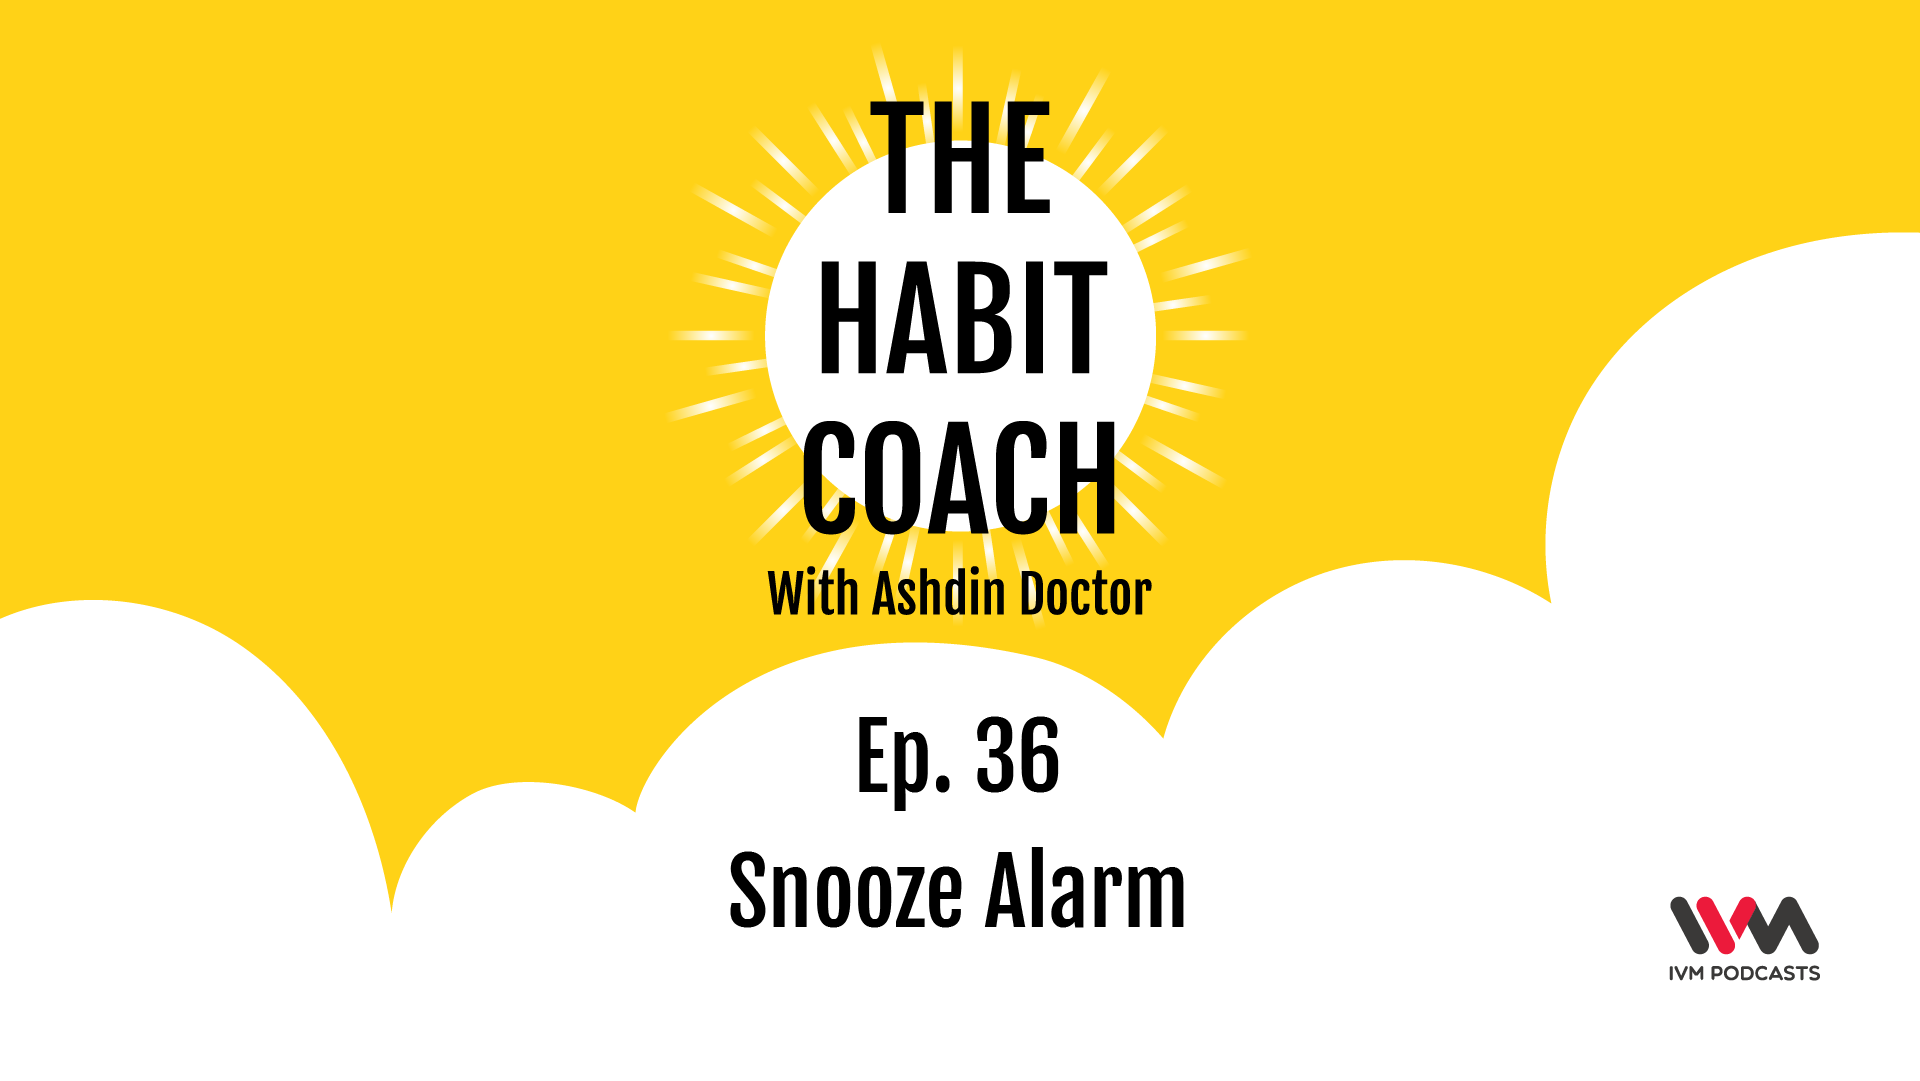 TheHabitCoachEpisode36.png